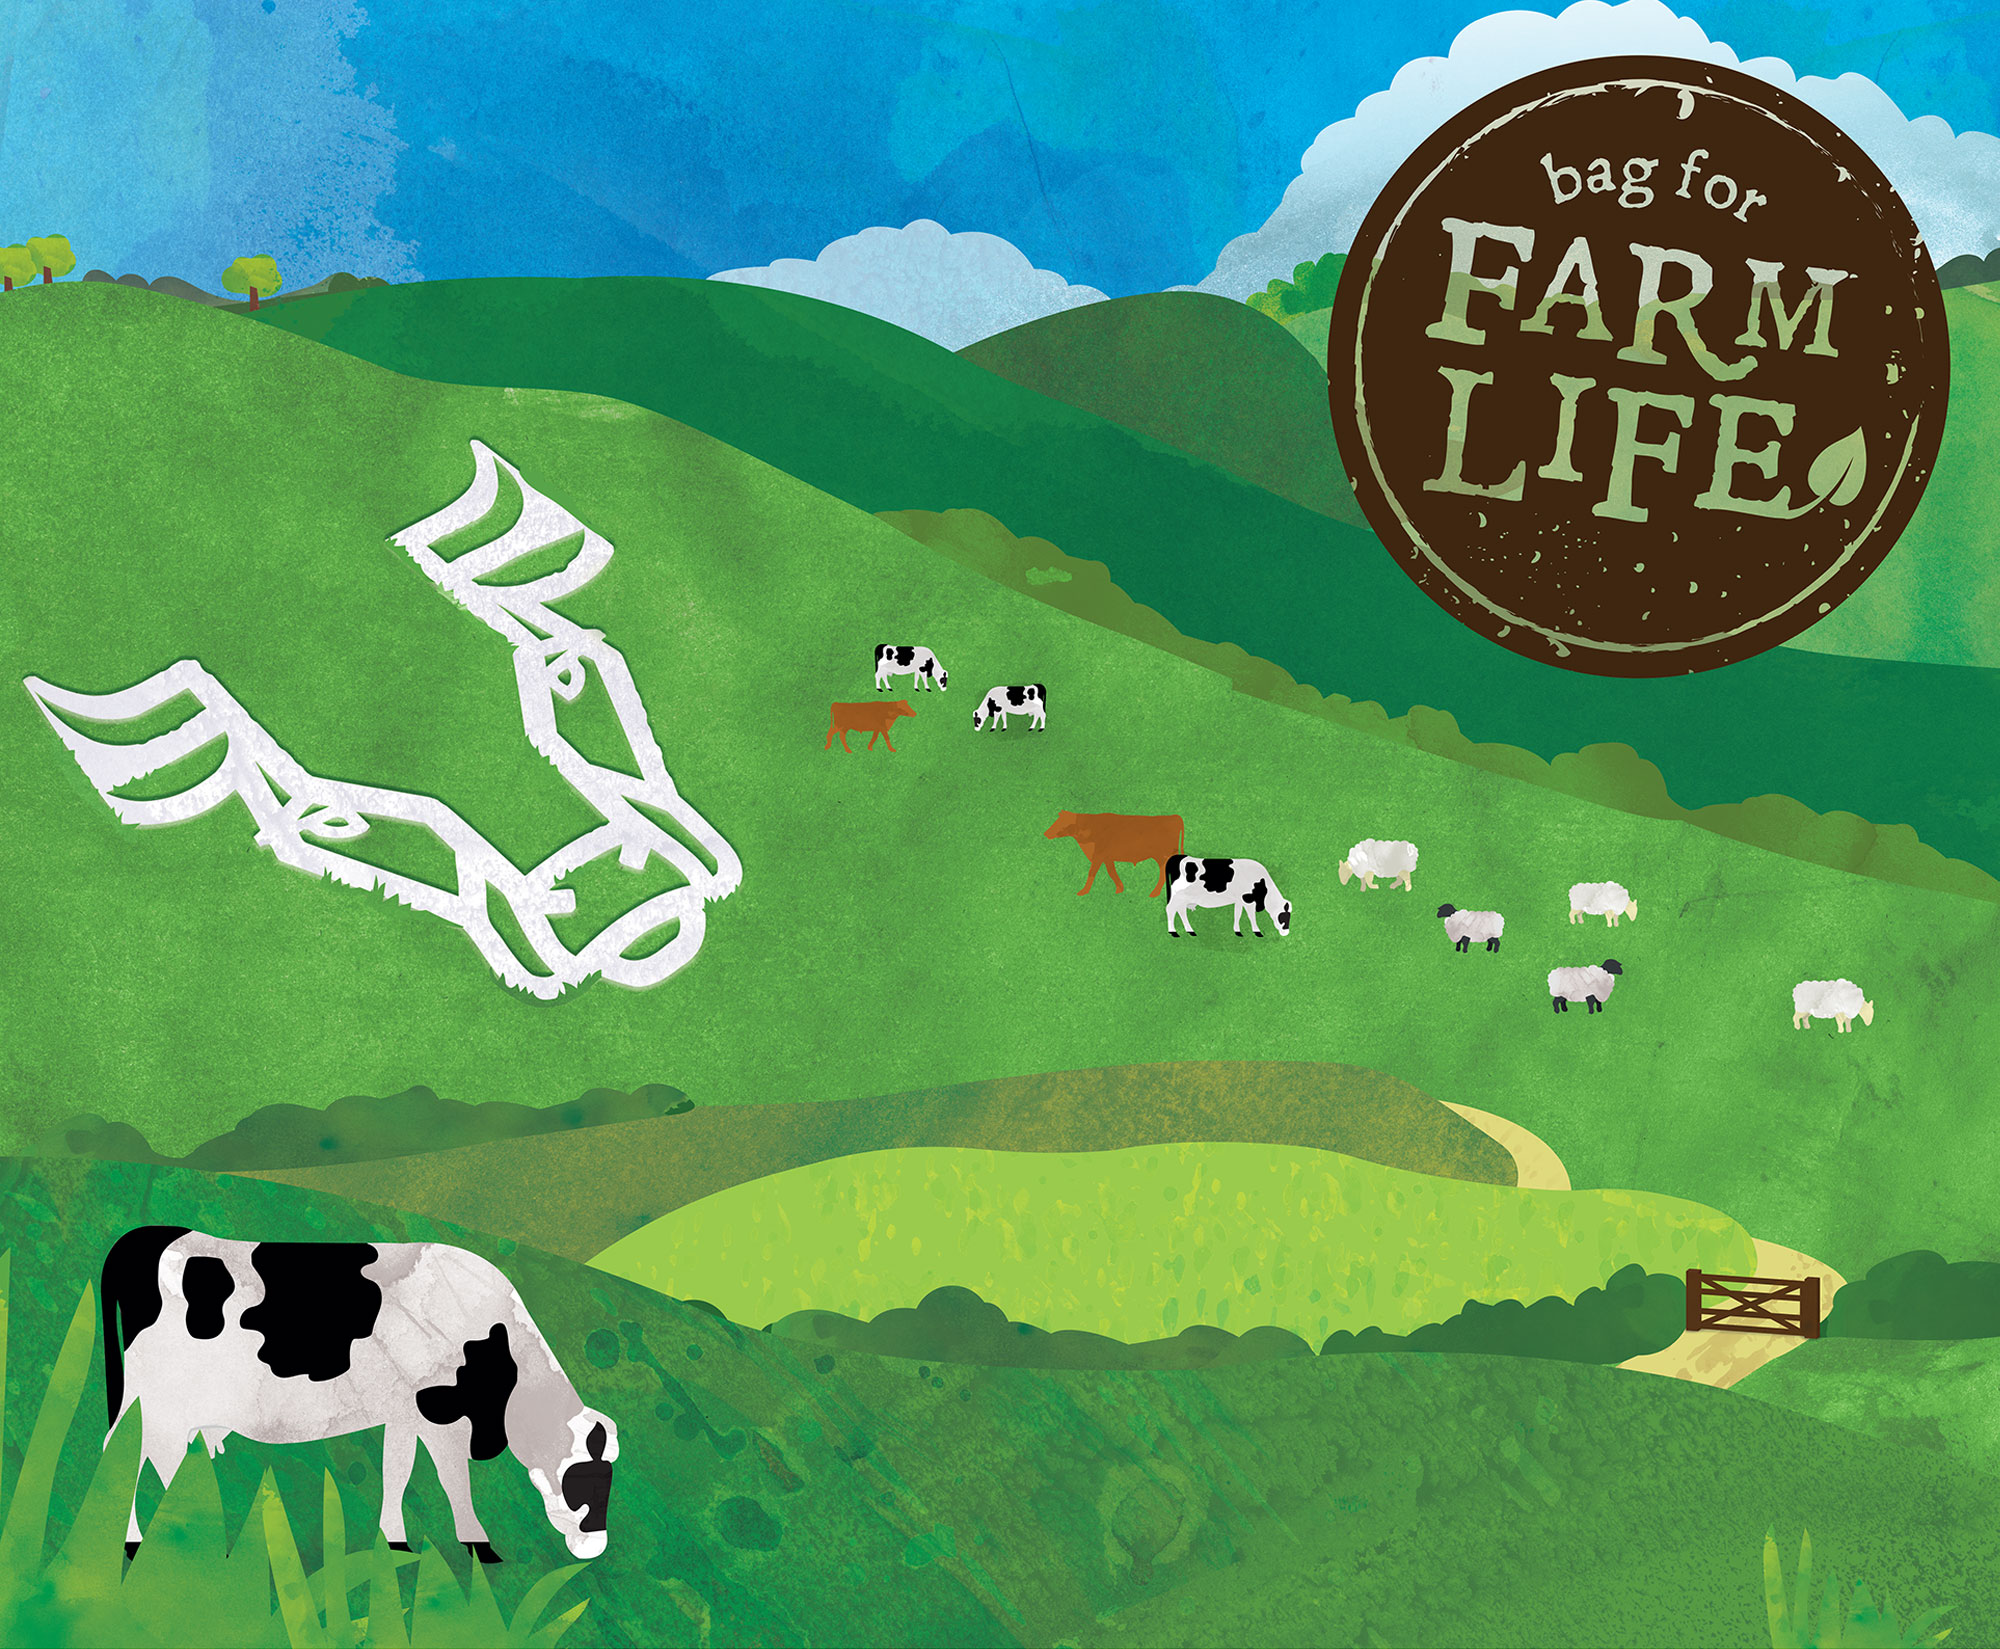 Illustration for Bag for Farm Life